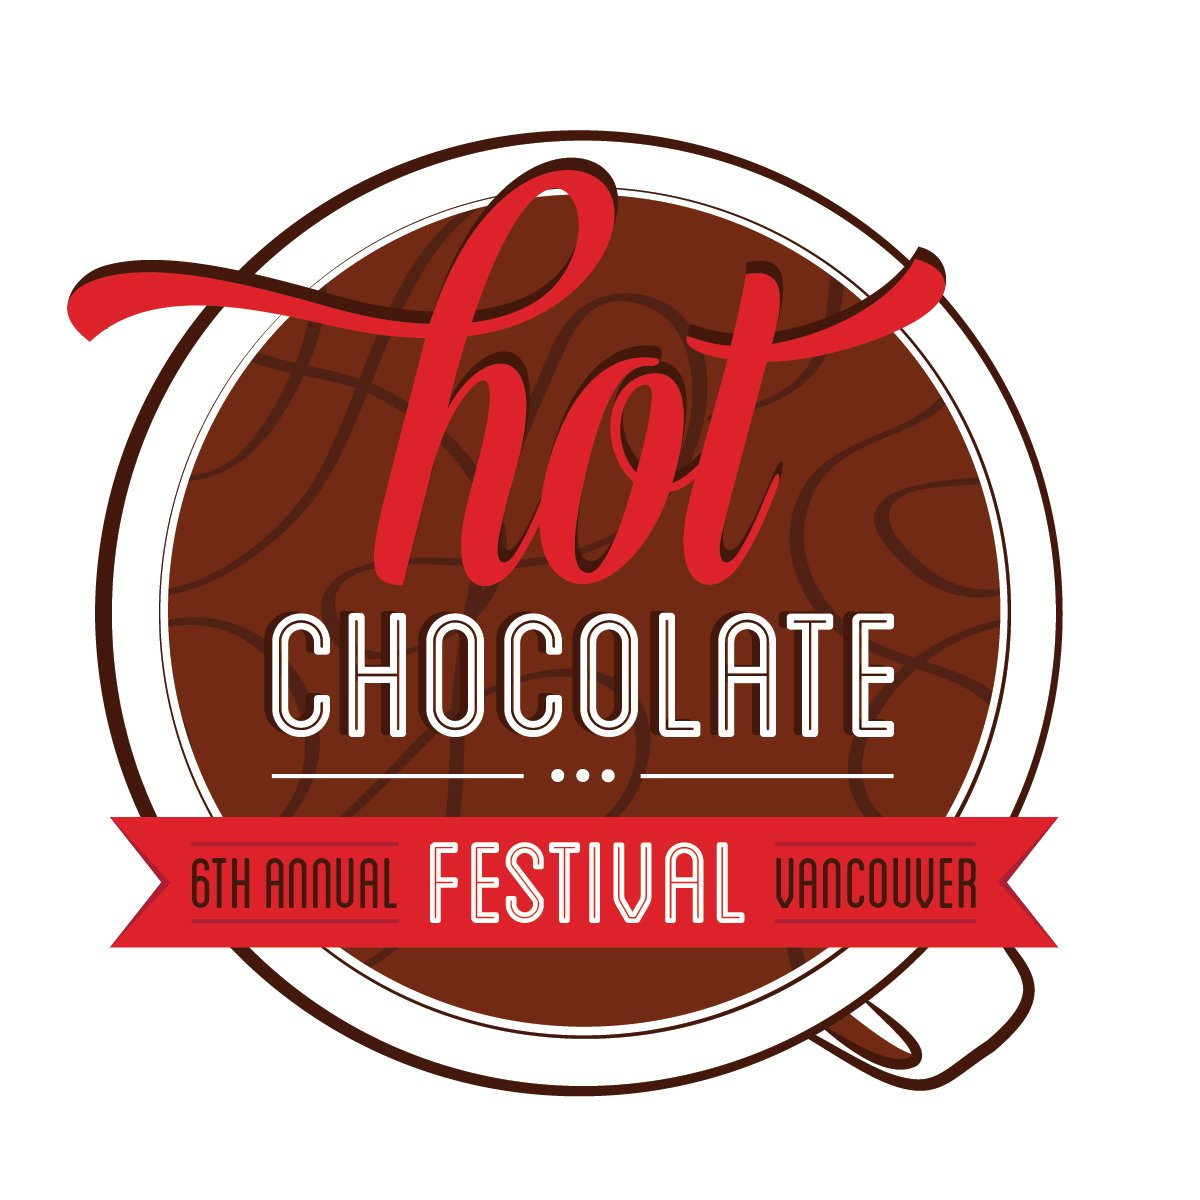 The #Vancouver #hotchocolatefest starts this Sat, Jan 16. Here's all the info: https://t.co/ikieB6GiQ6 https://t.co/jcSJmg5Ceu